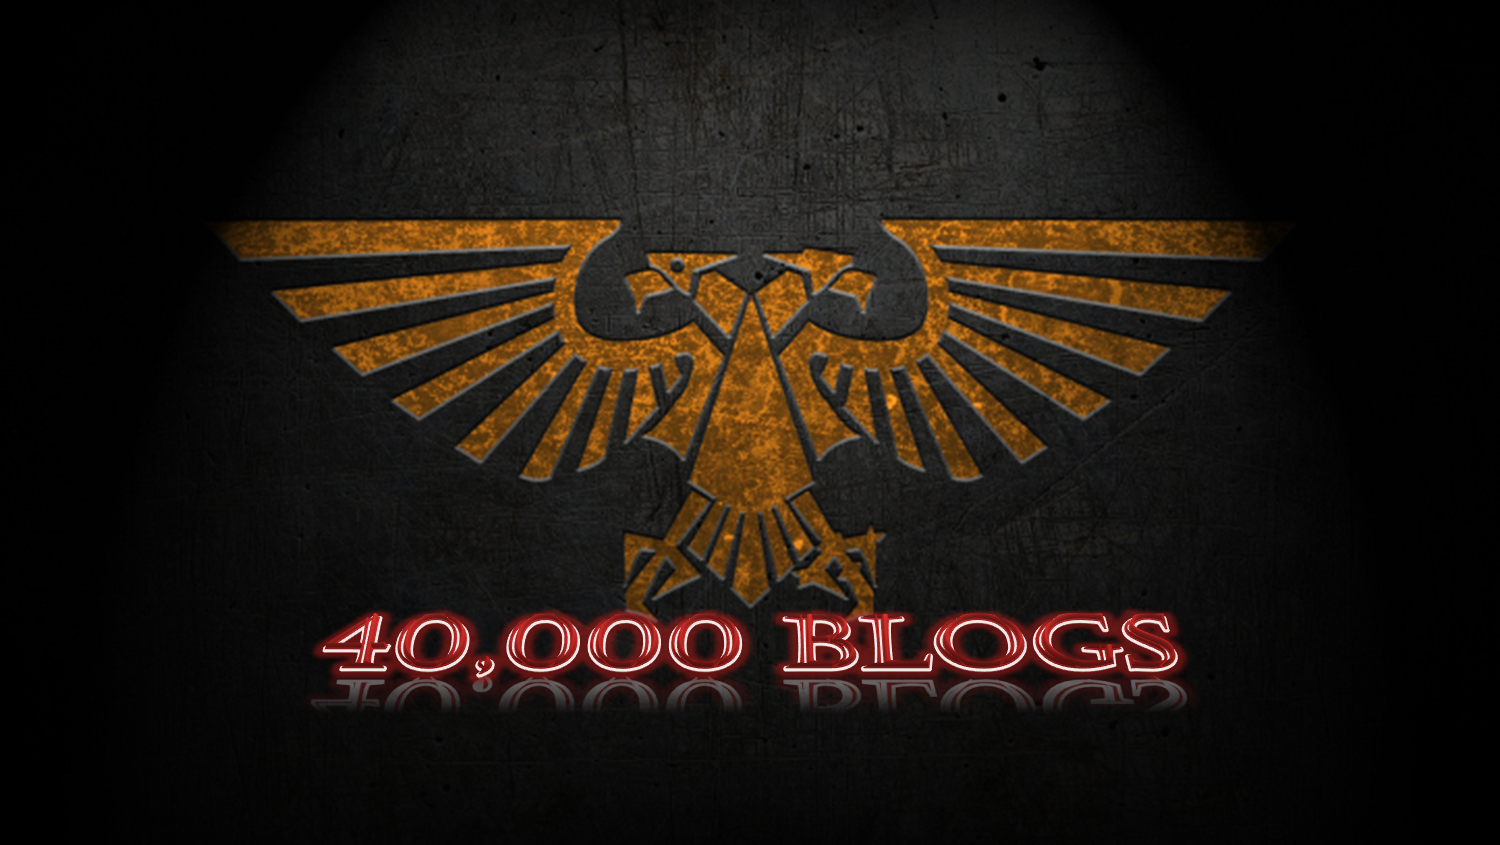 Warhammer 40k blogging group